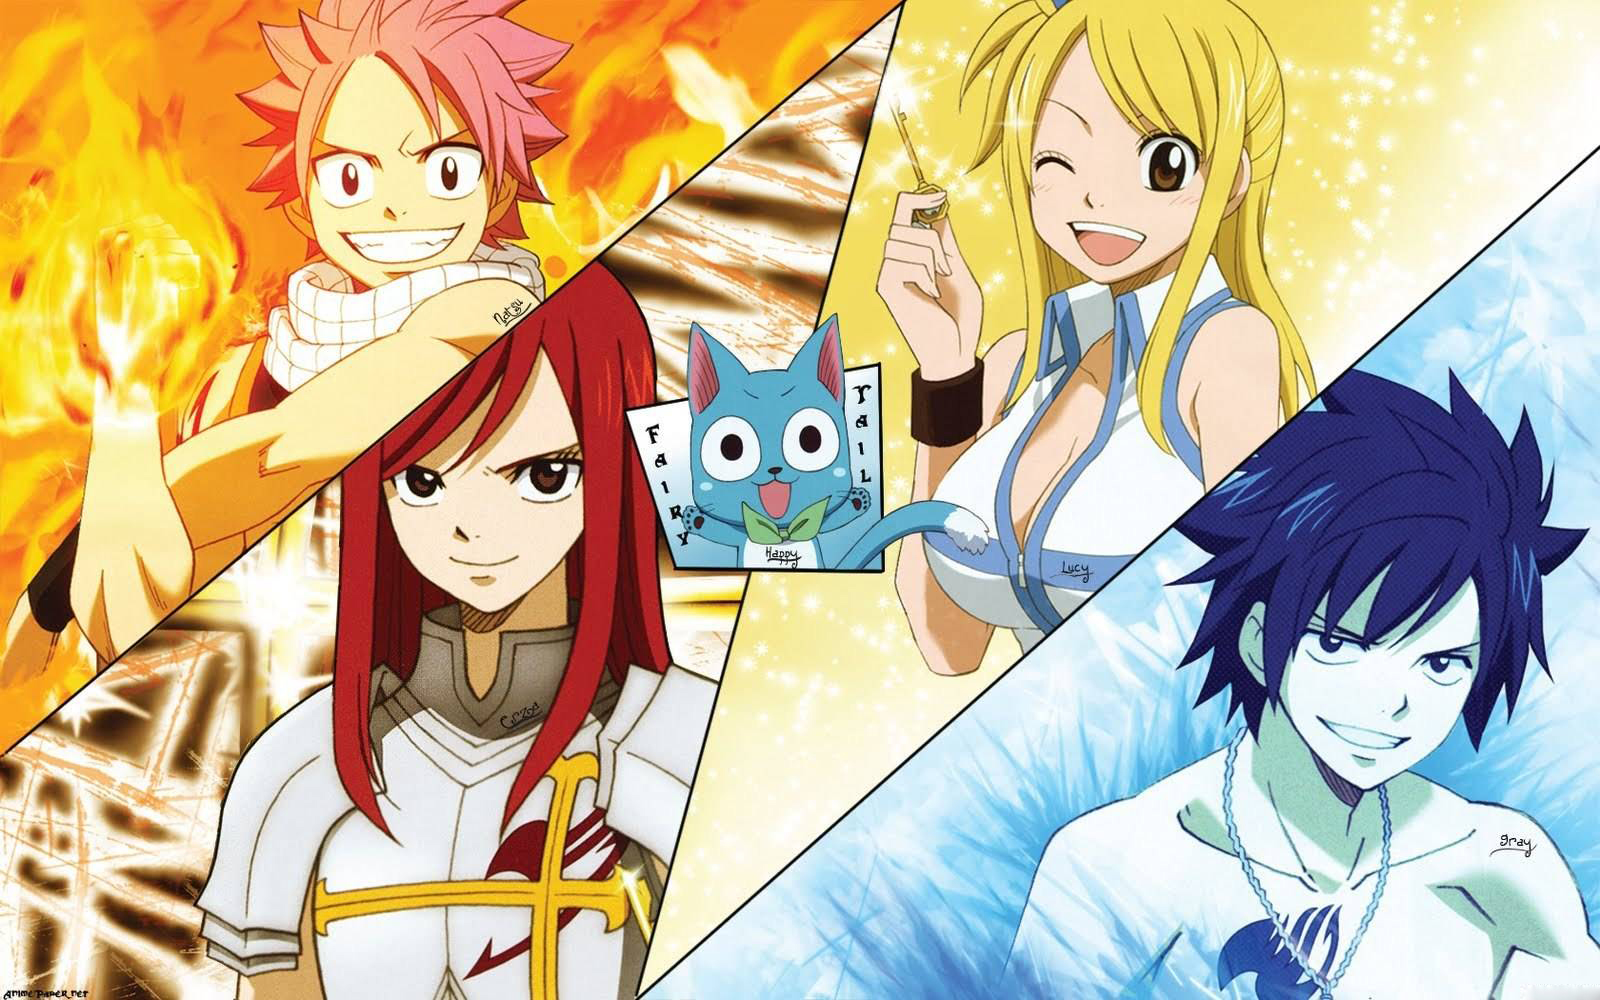 Fairy Tail HD Wallpaper for iphone HD Wallpaper 1600x1000